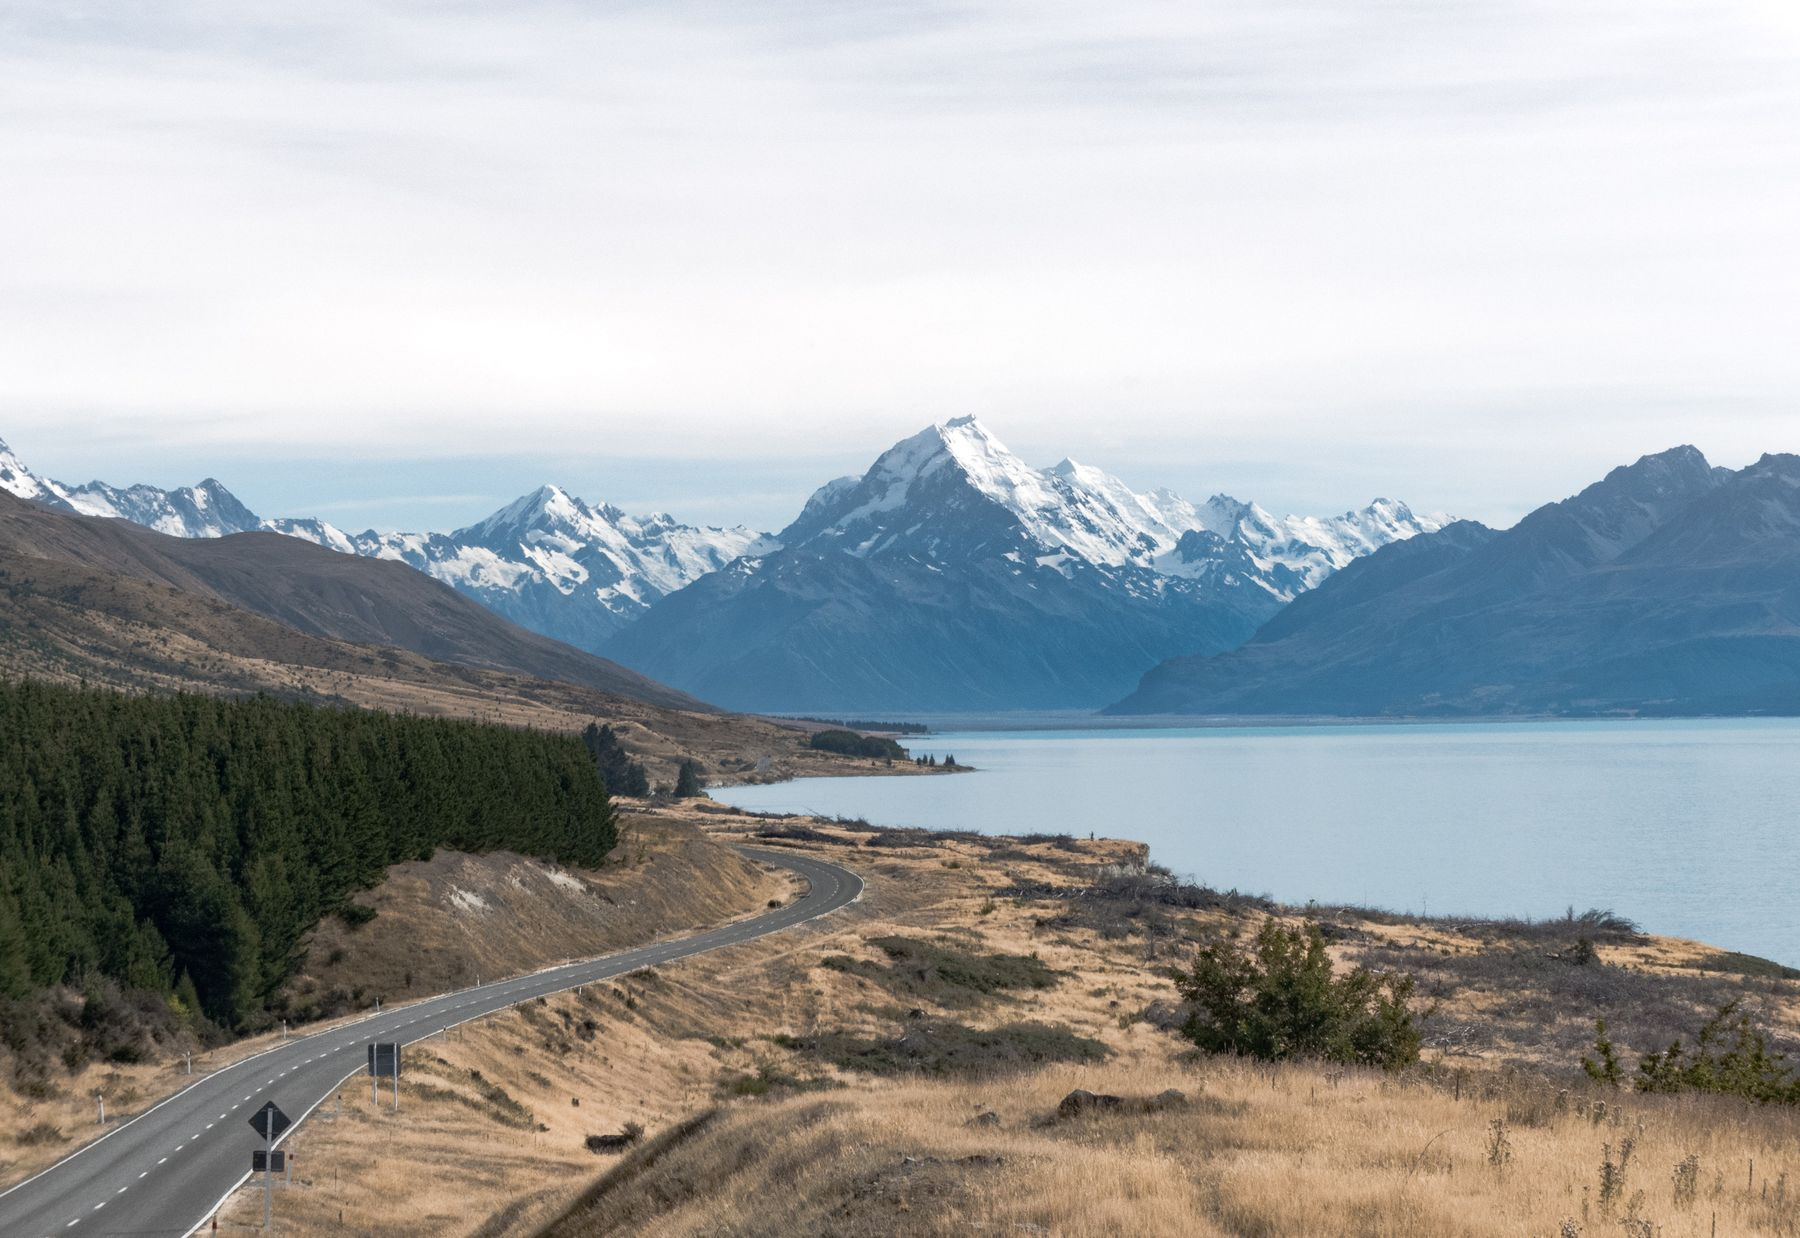 Scenic view of New Zealand's epic mountain ranges and lakes